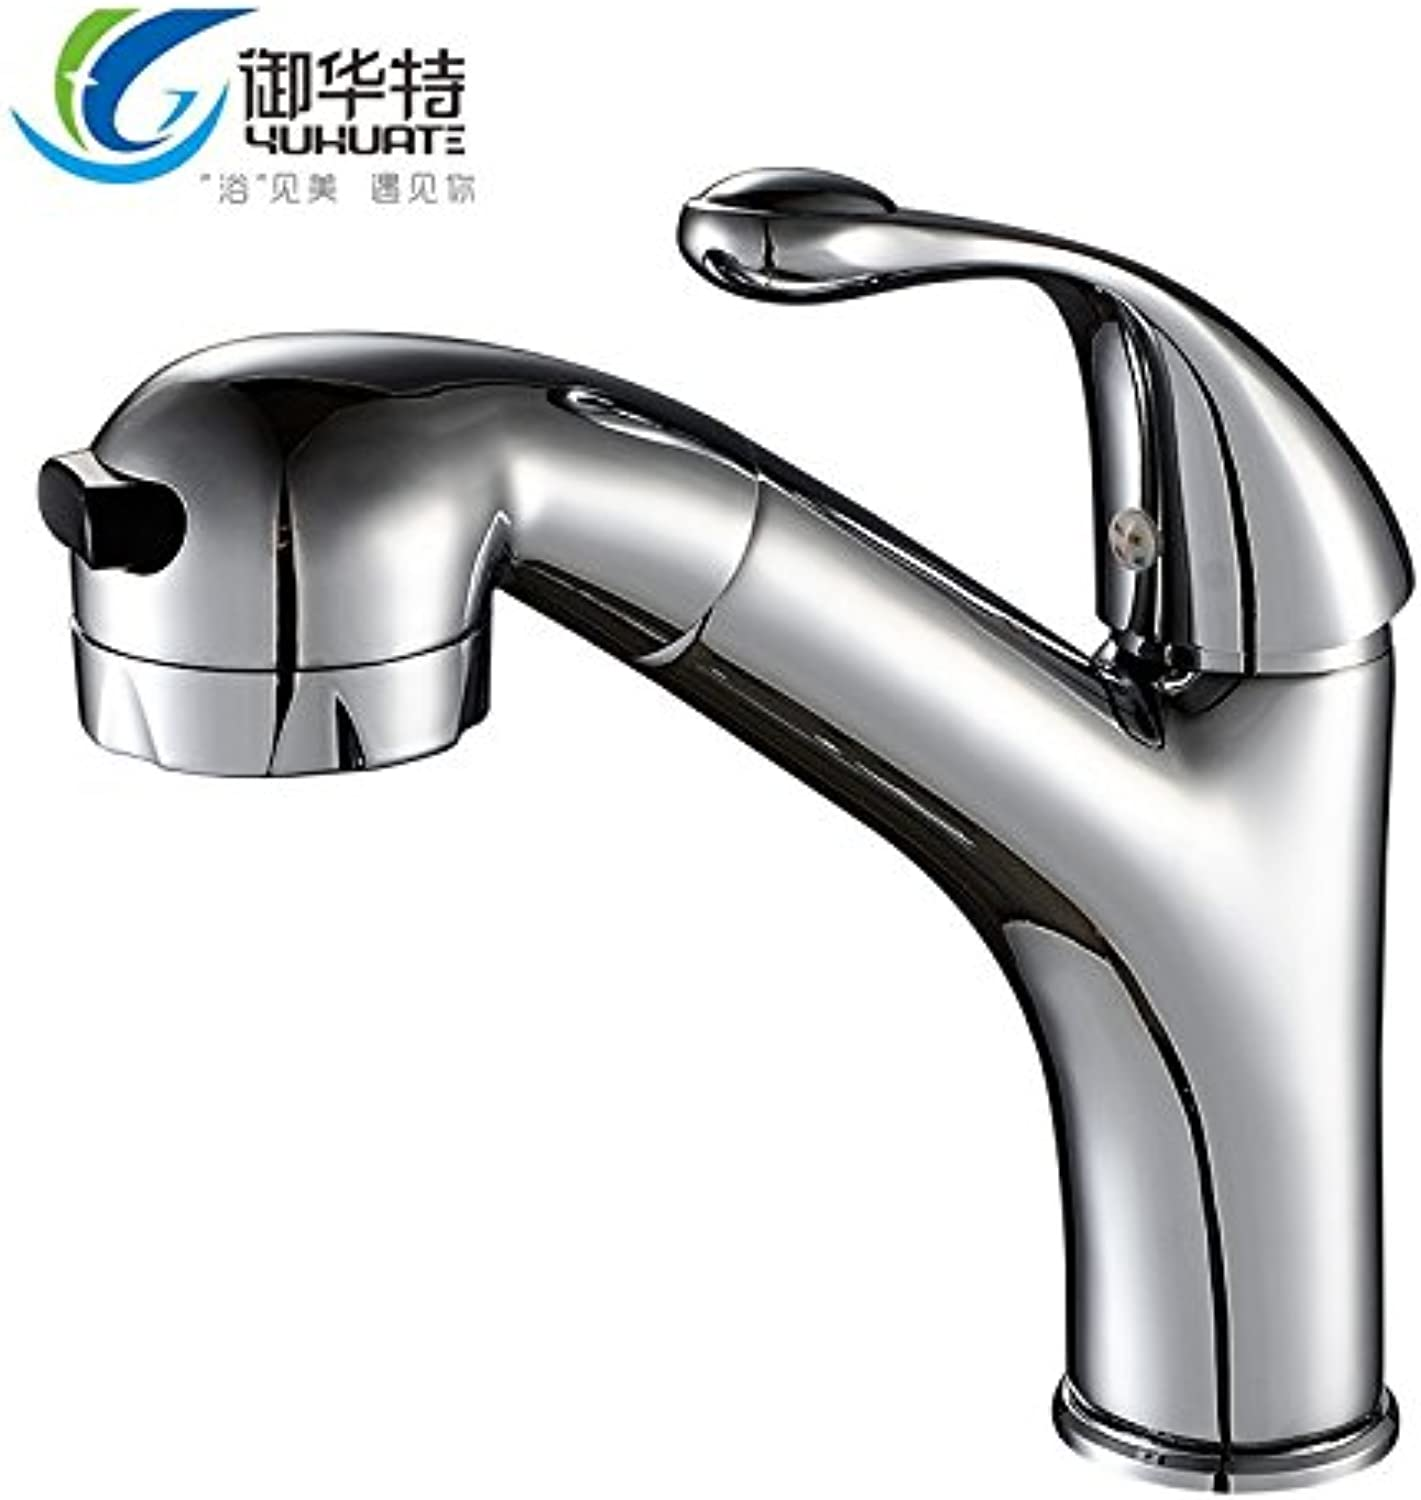 ETERNAL QUALITY Bathroom Sink Basin Tap Brass Mixer Tap Washroom Mixer Faucet Hot and cold basin water taps for the basin faucet single handle single hole basin wash it w